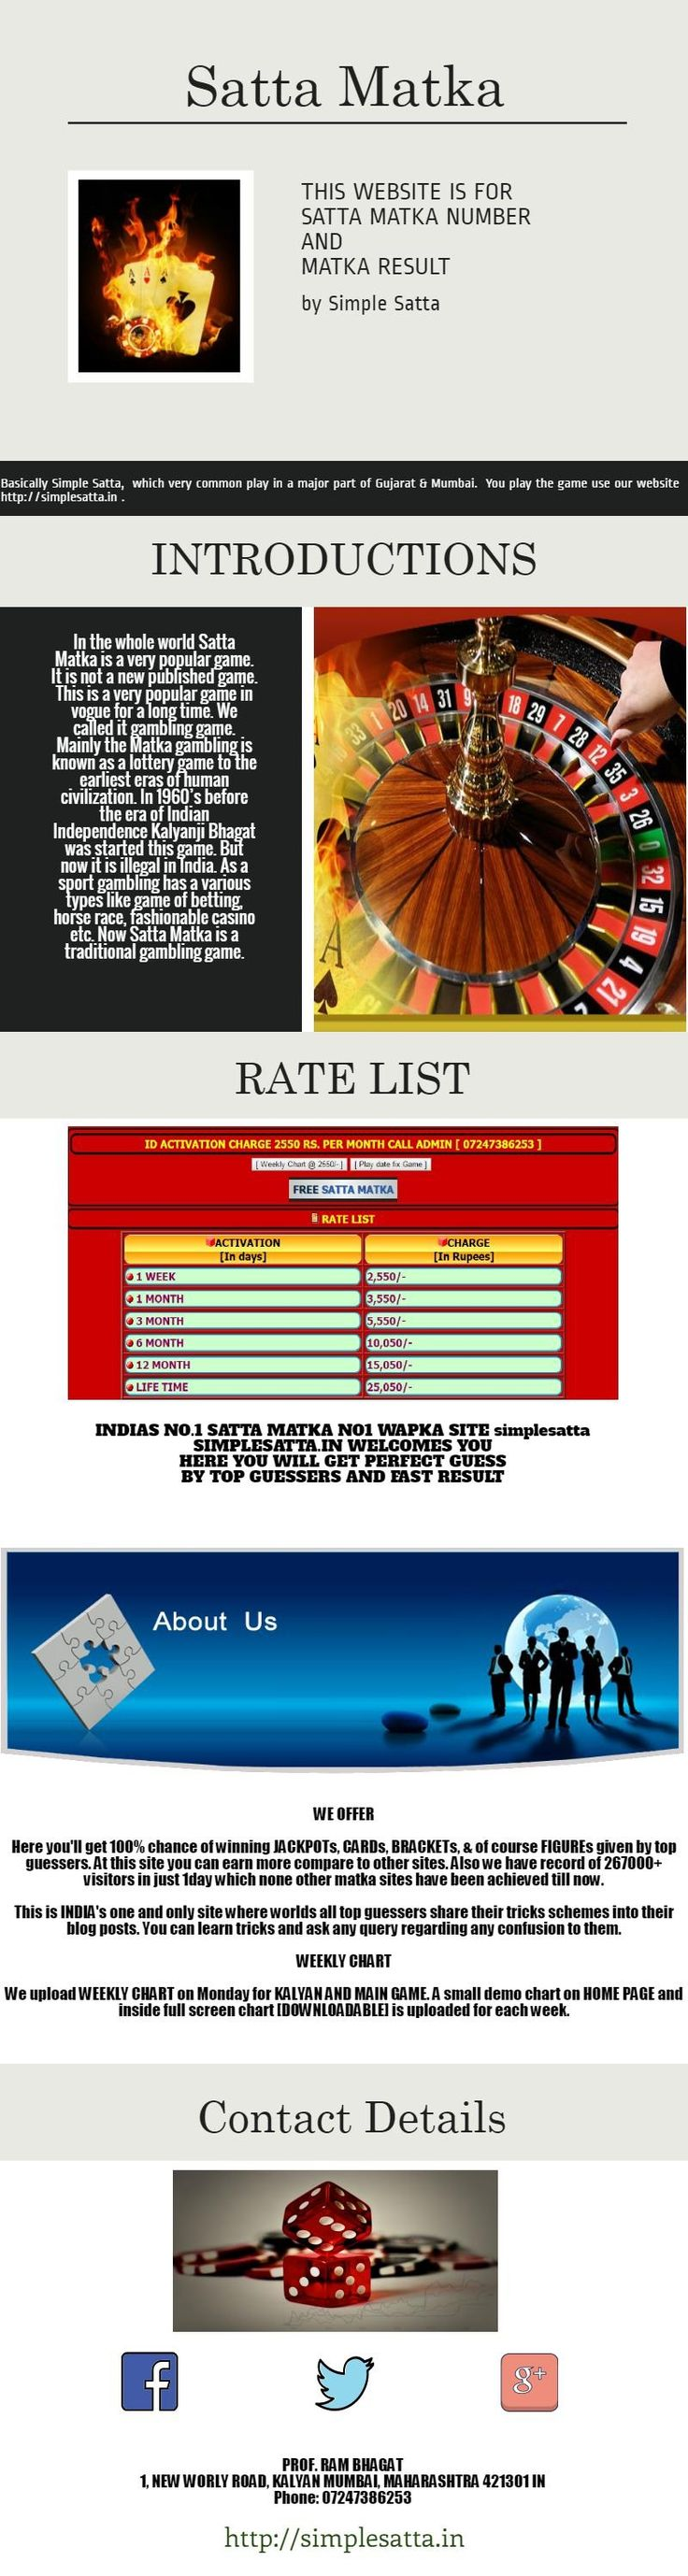 The Simple Satta online game system is the world's largest and authentic fixed date Satta Matka market.